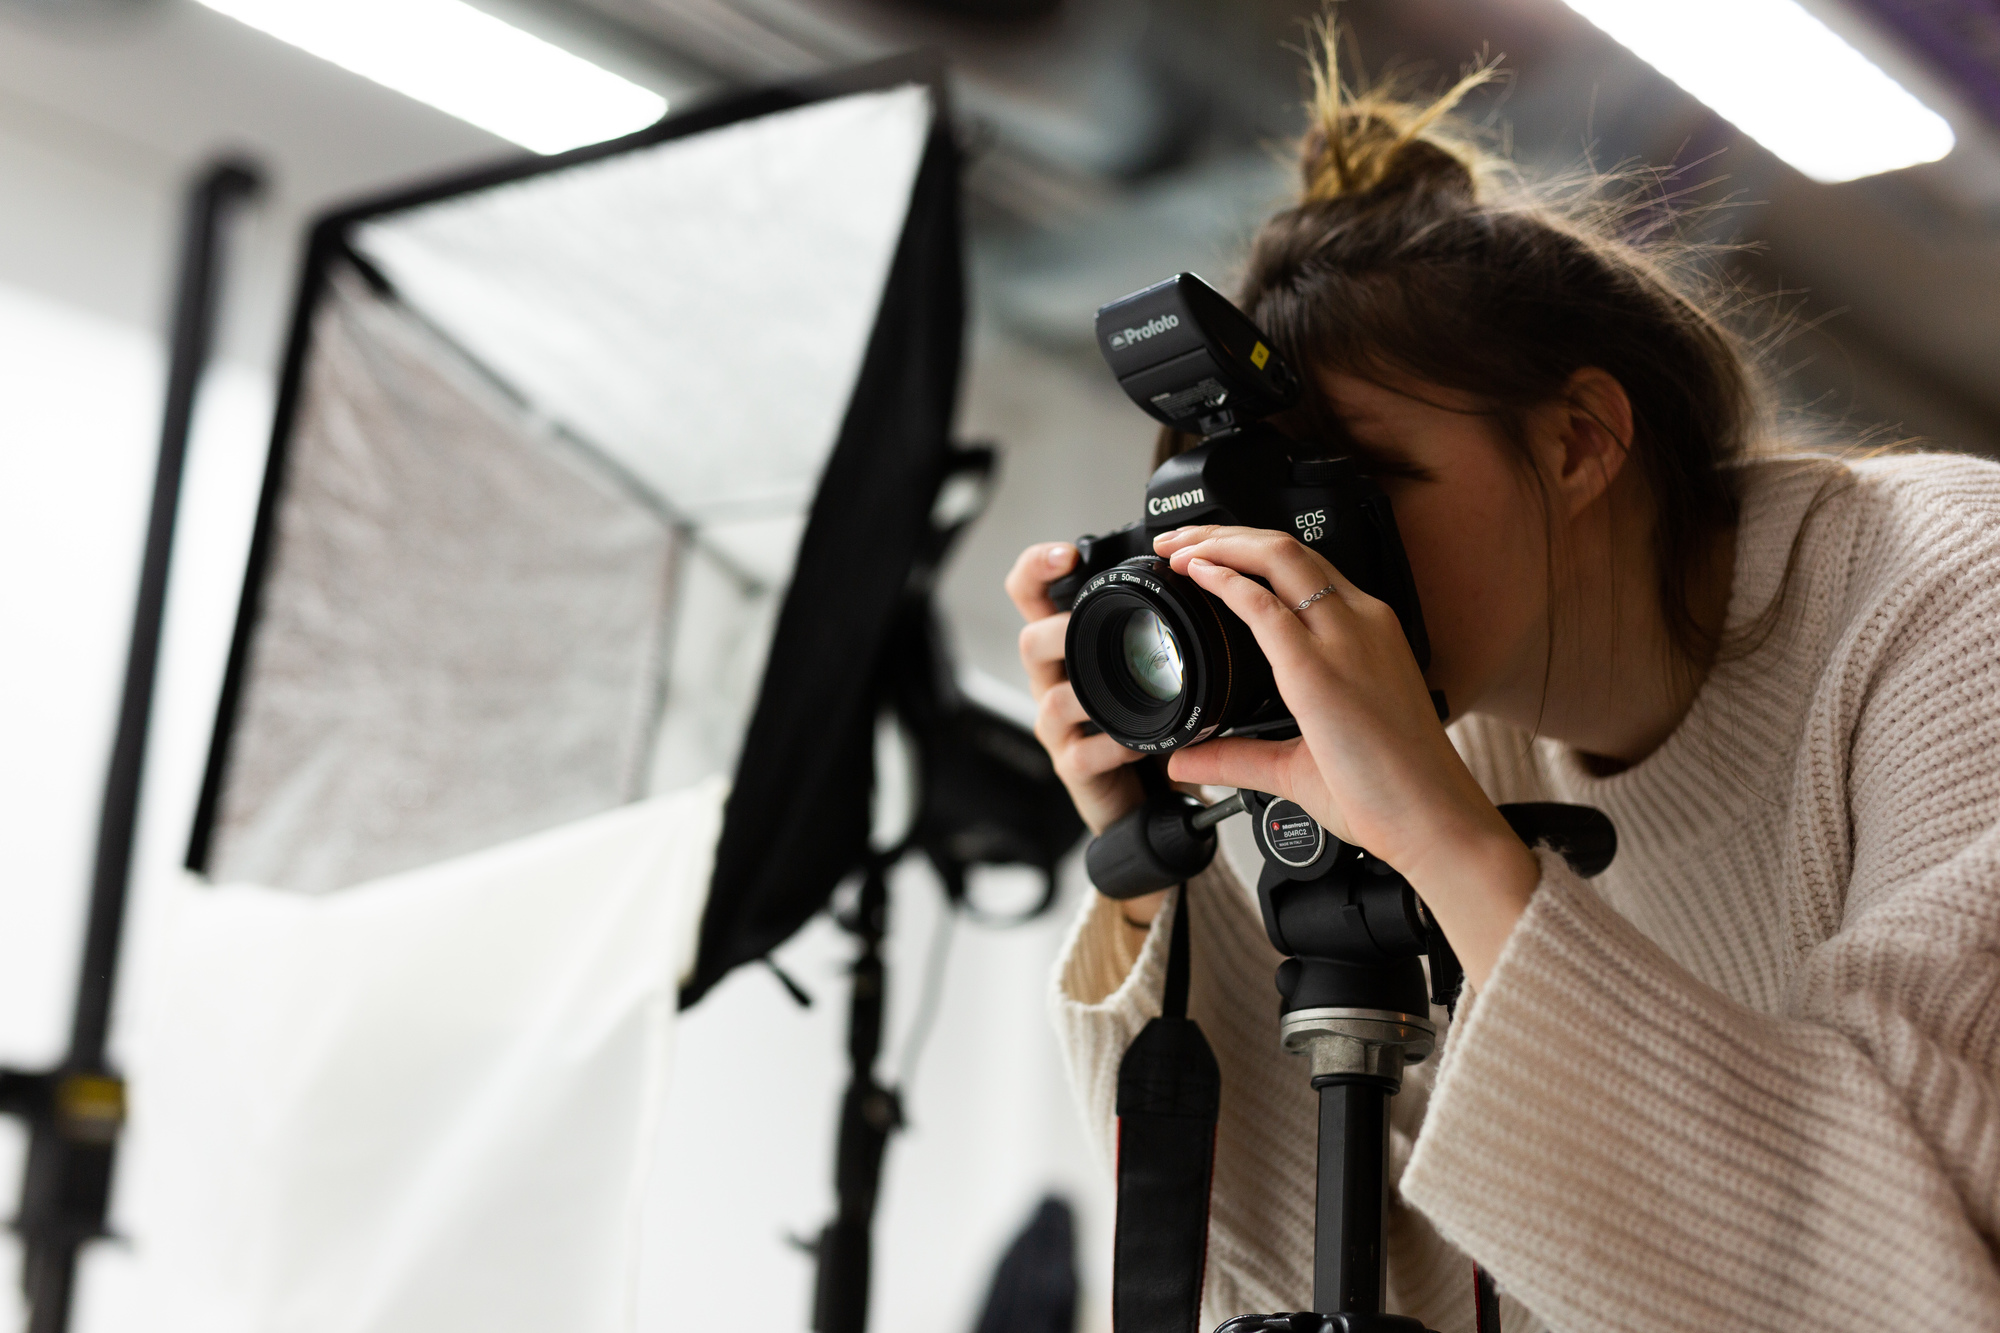 Female student looks through a camera with a specialist light in the background